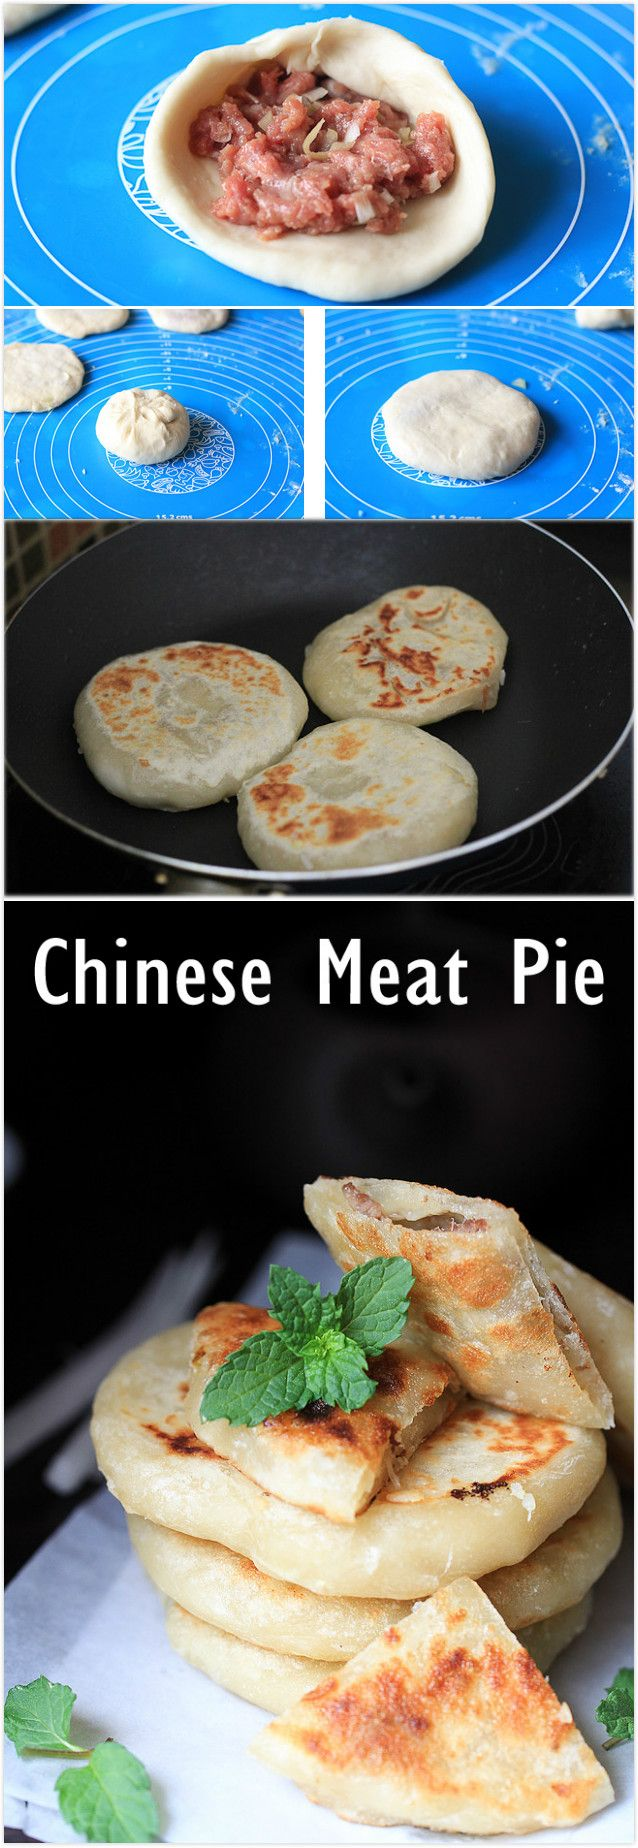 Chinese Meat Pie (Xian Bing) 丨China Sichuan Food